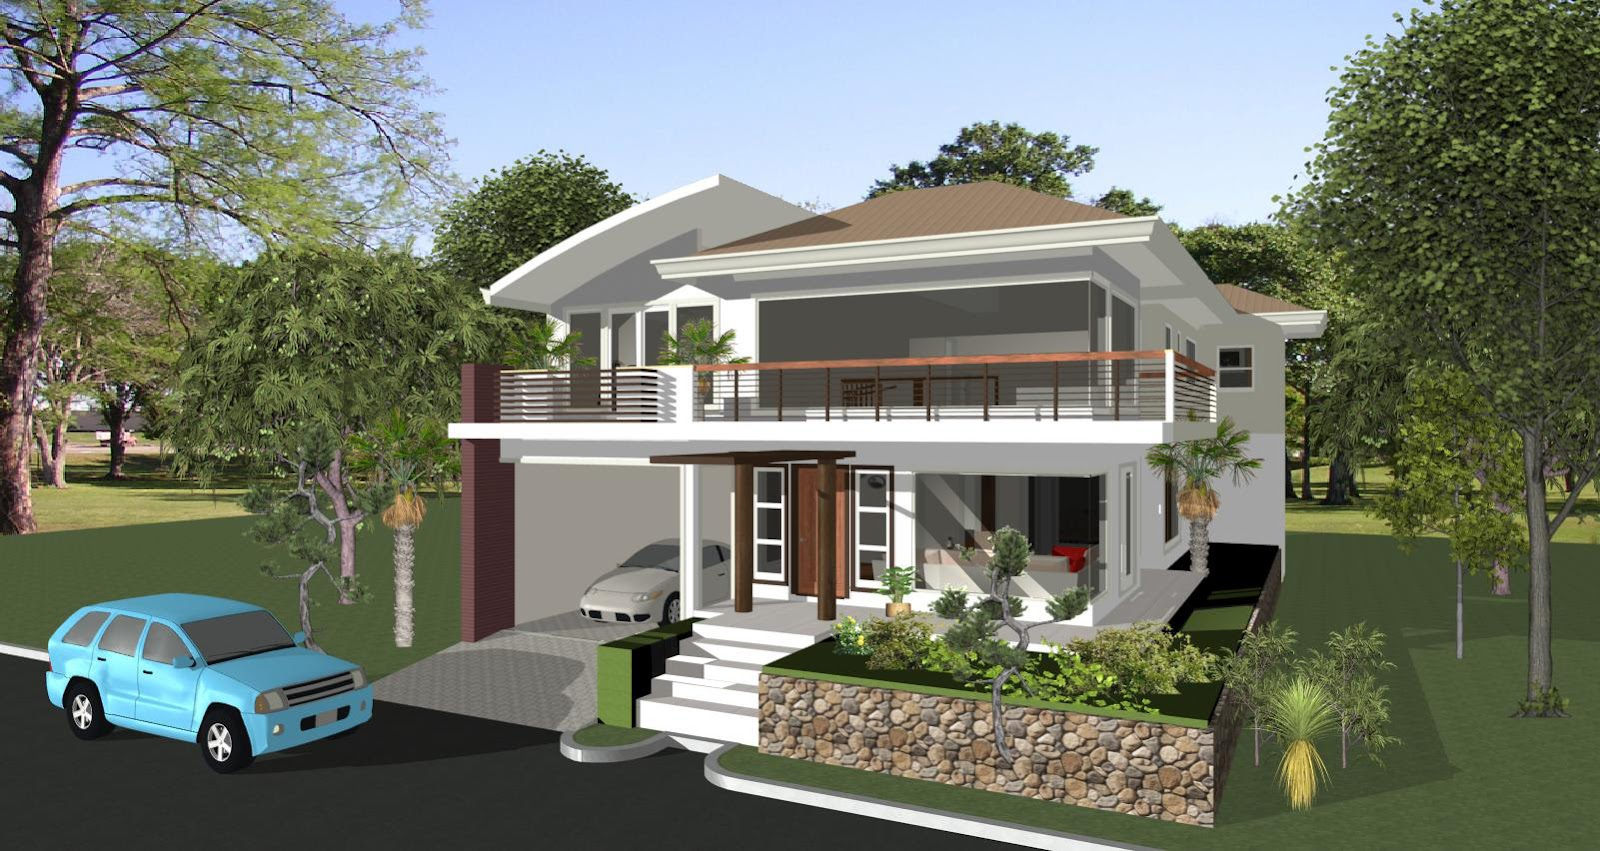 House designs in the philippines in iloilo by erecre group for Latest house designs